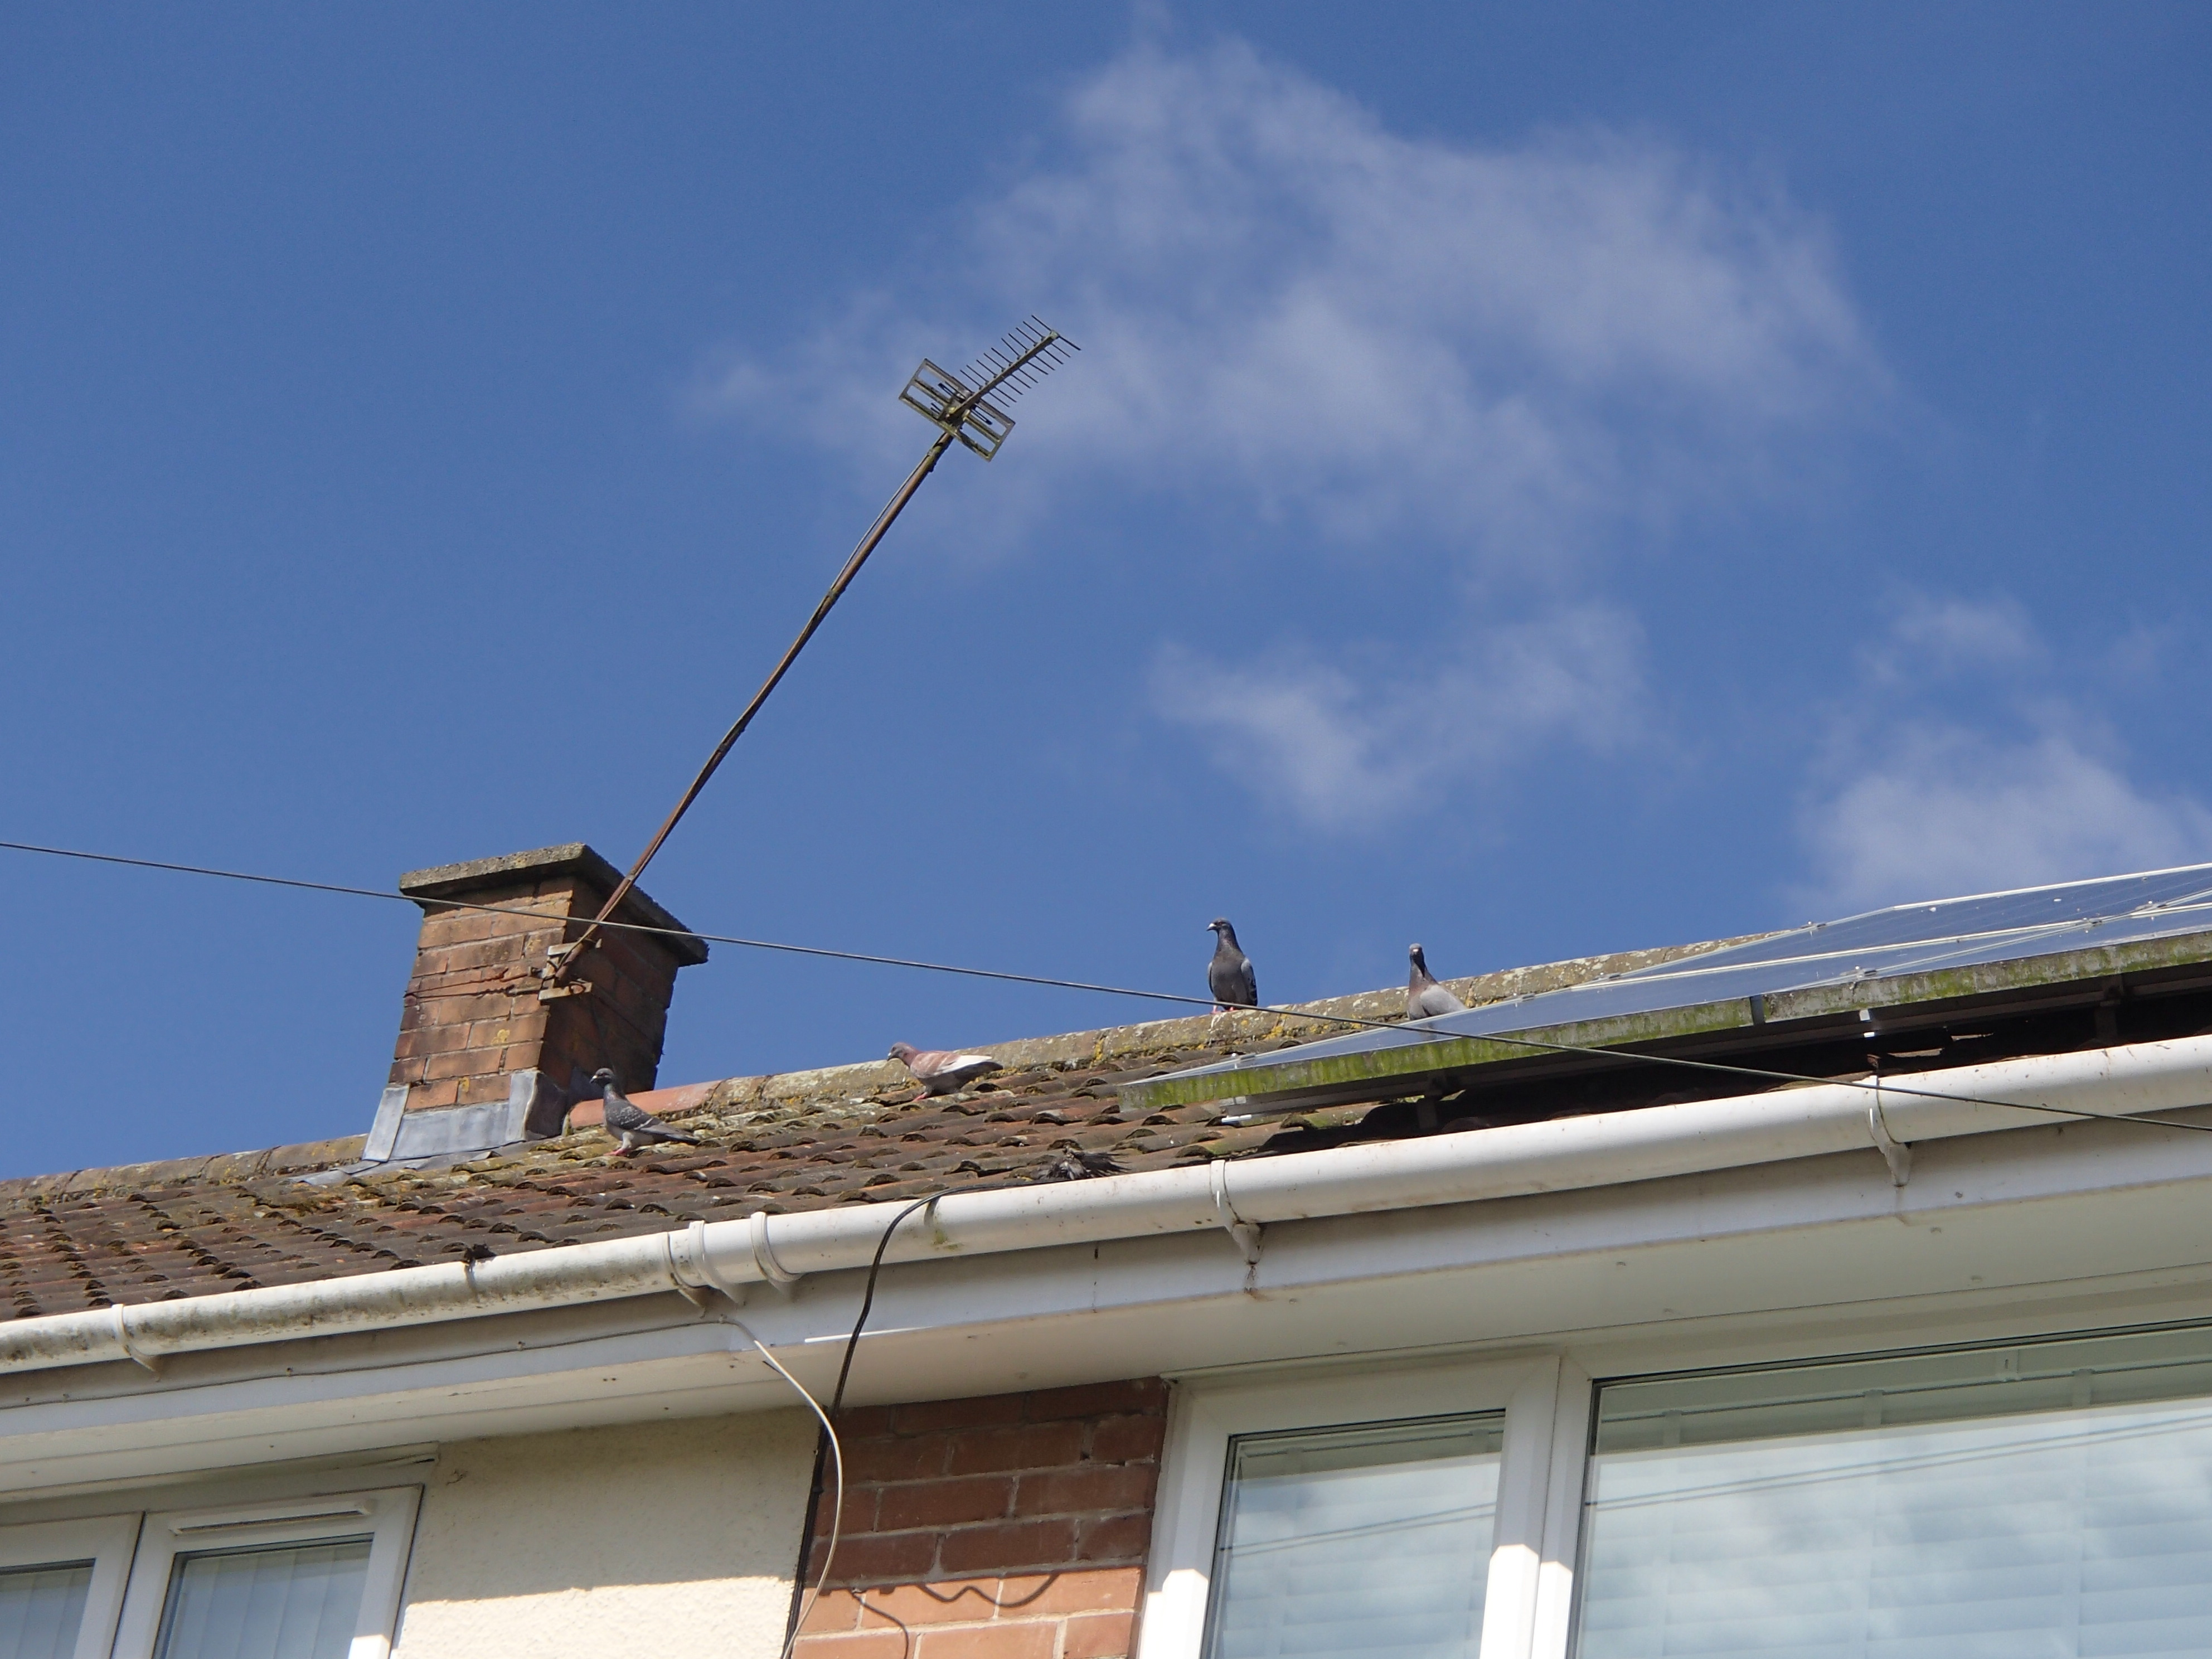 proofing solar panels from pigeons_1